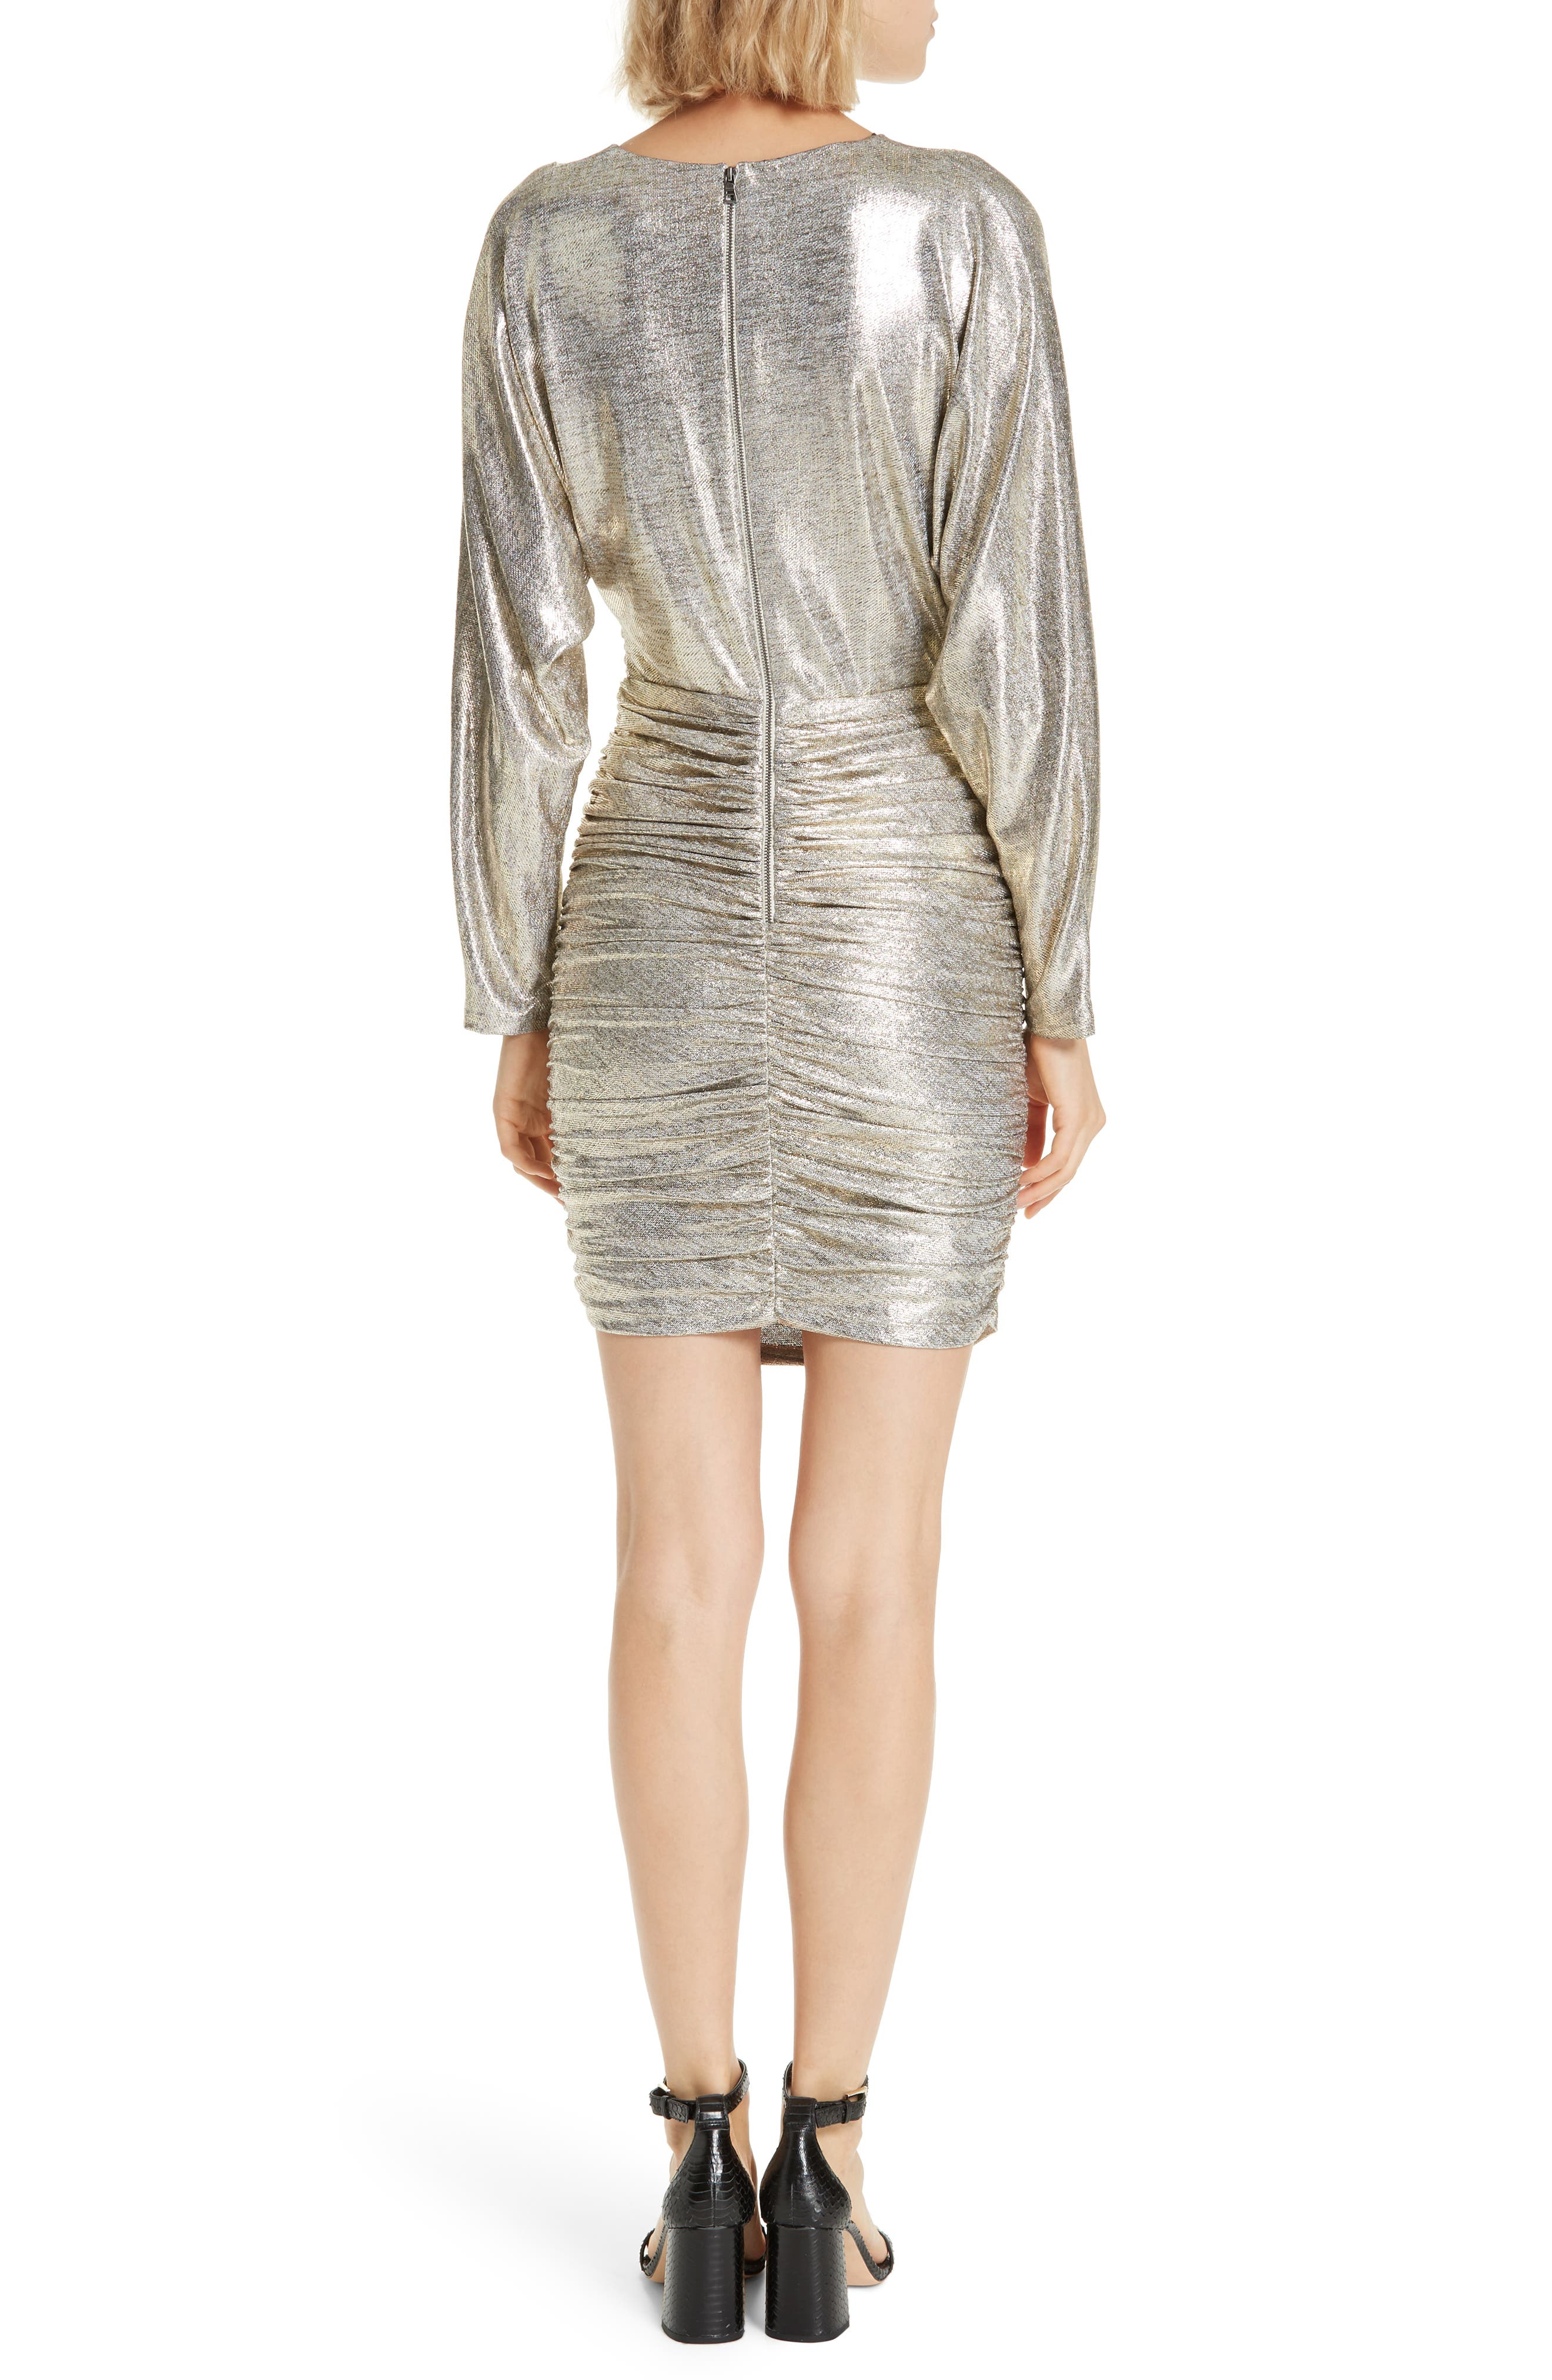 ALICE + OLIVIA, Pace Batwing Sleeve Party Dress, Alternate thumbnail 2, color, SILVER